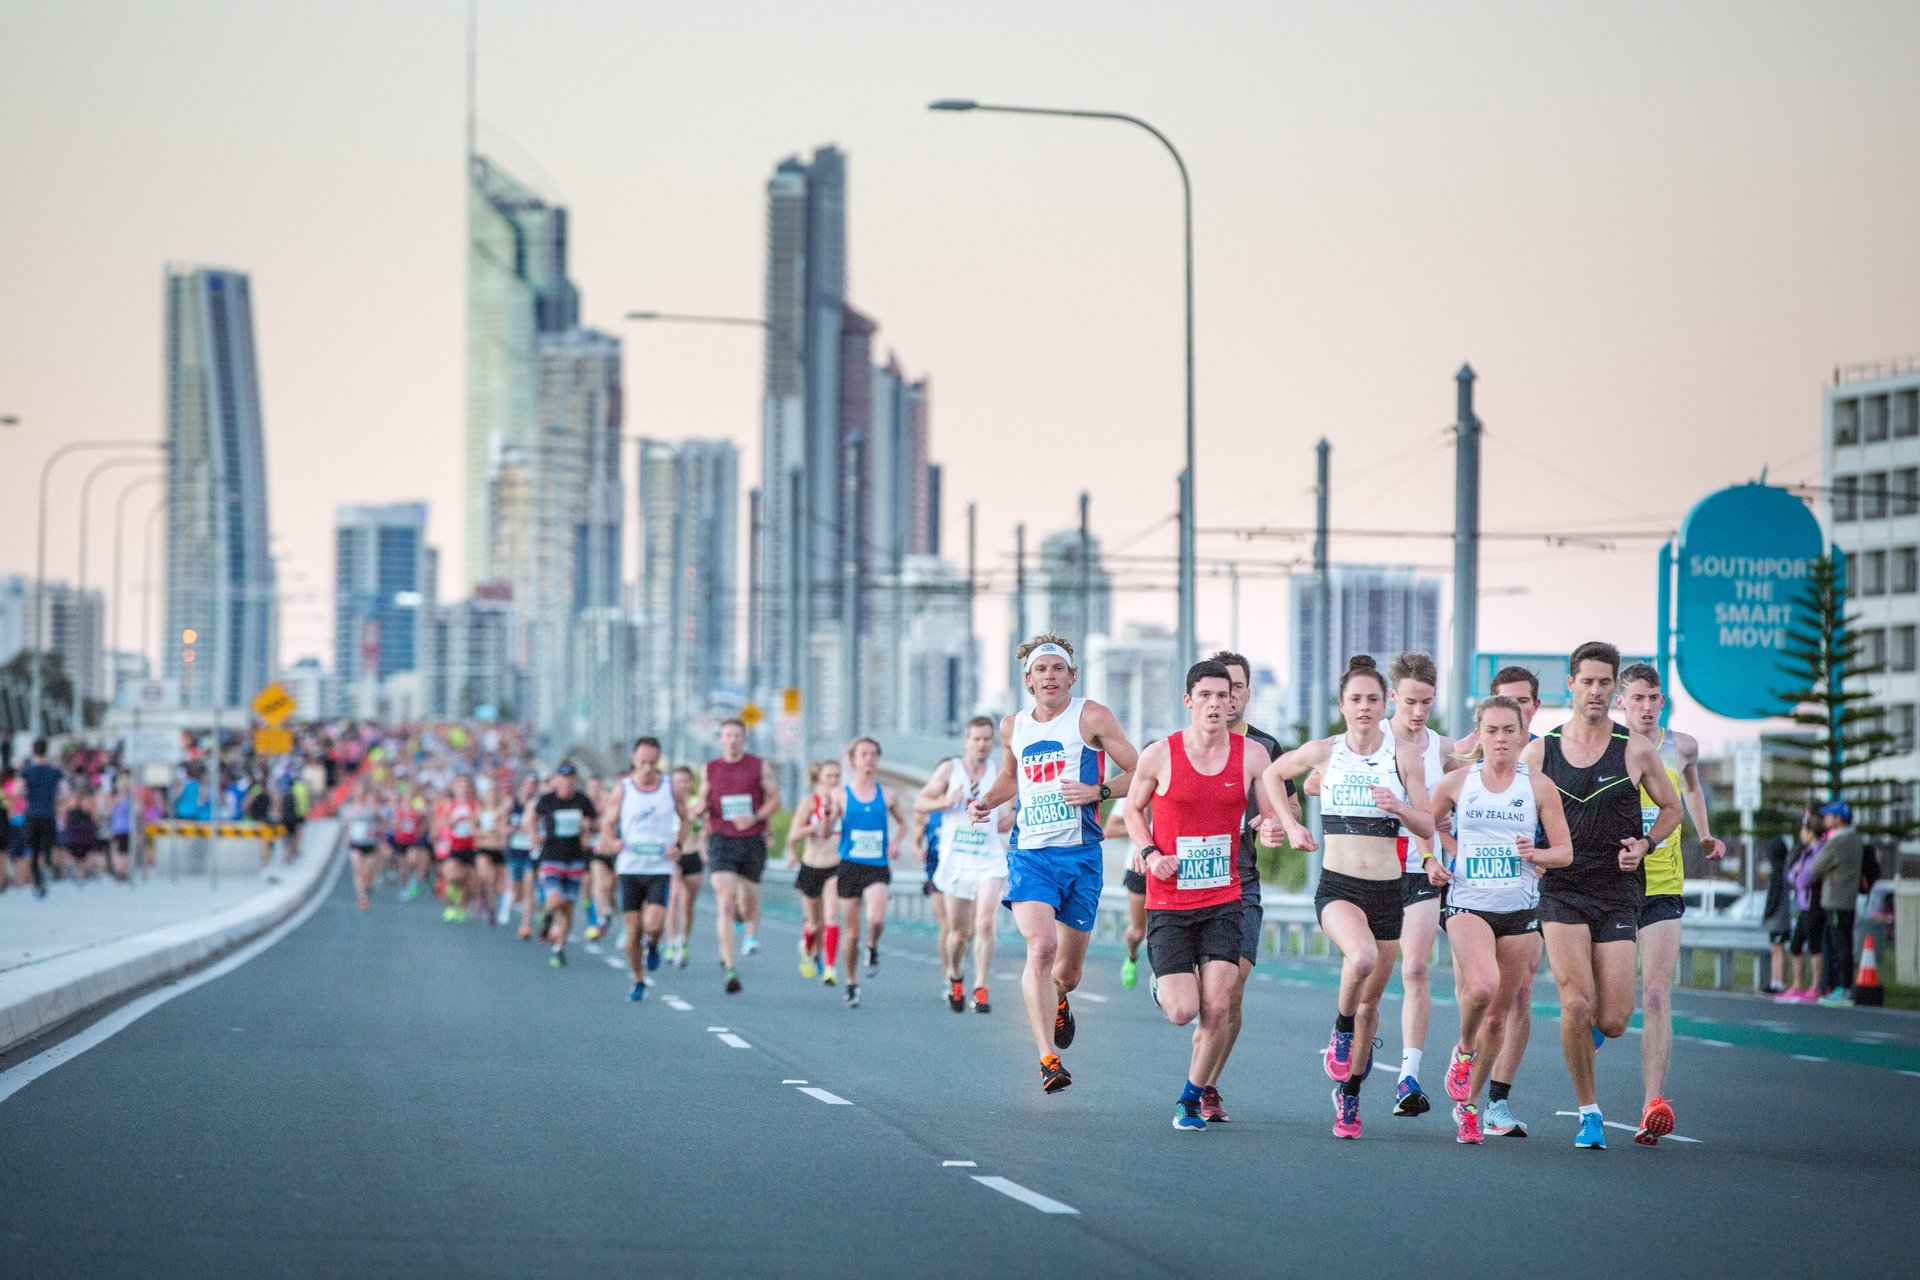 Gold Coast Marathon in Australia 2020 - Best Time